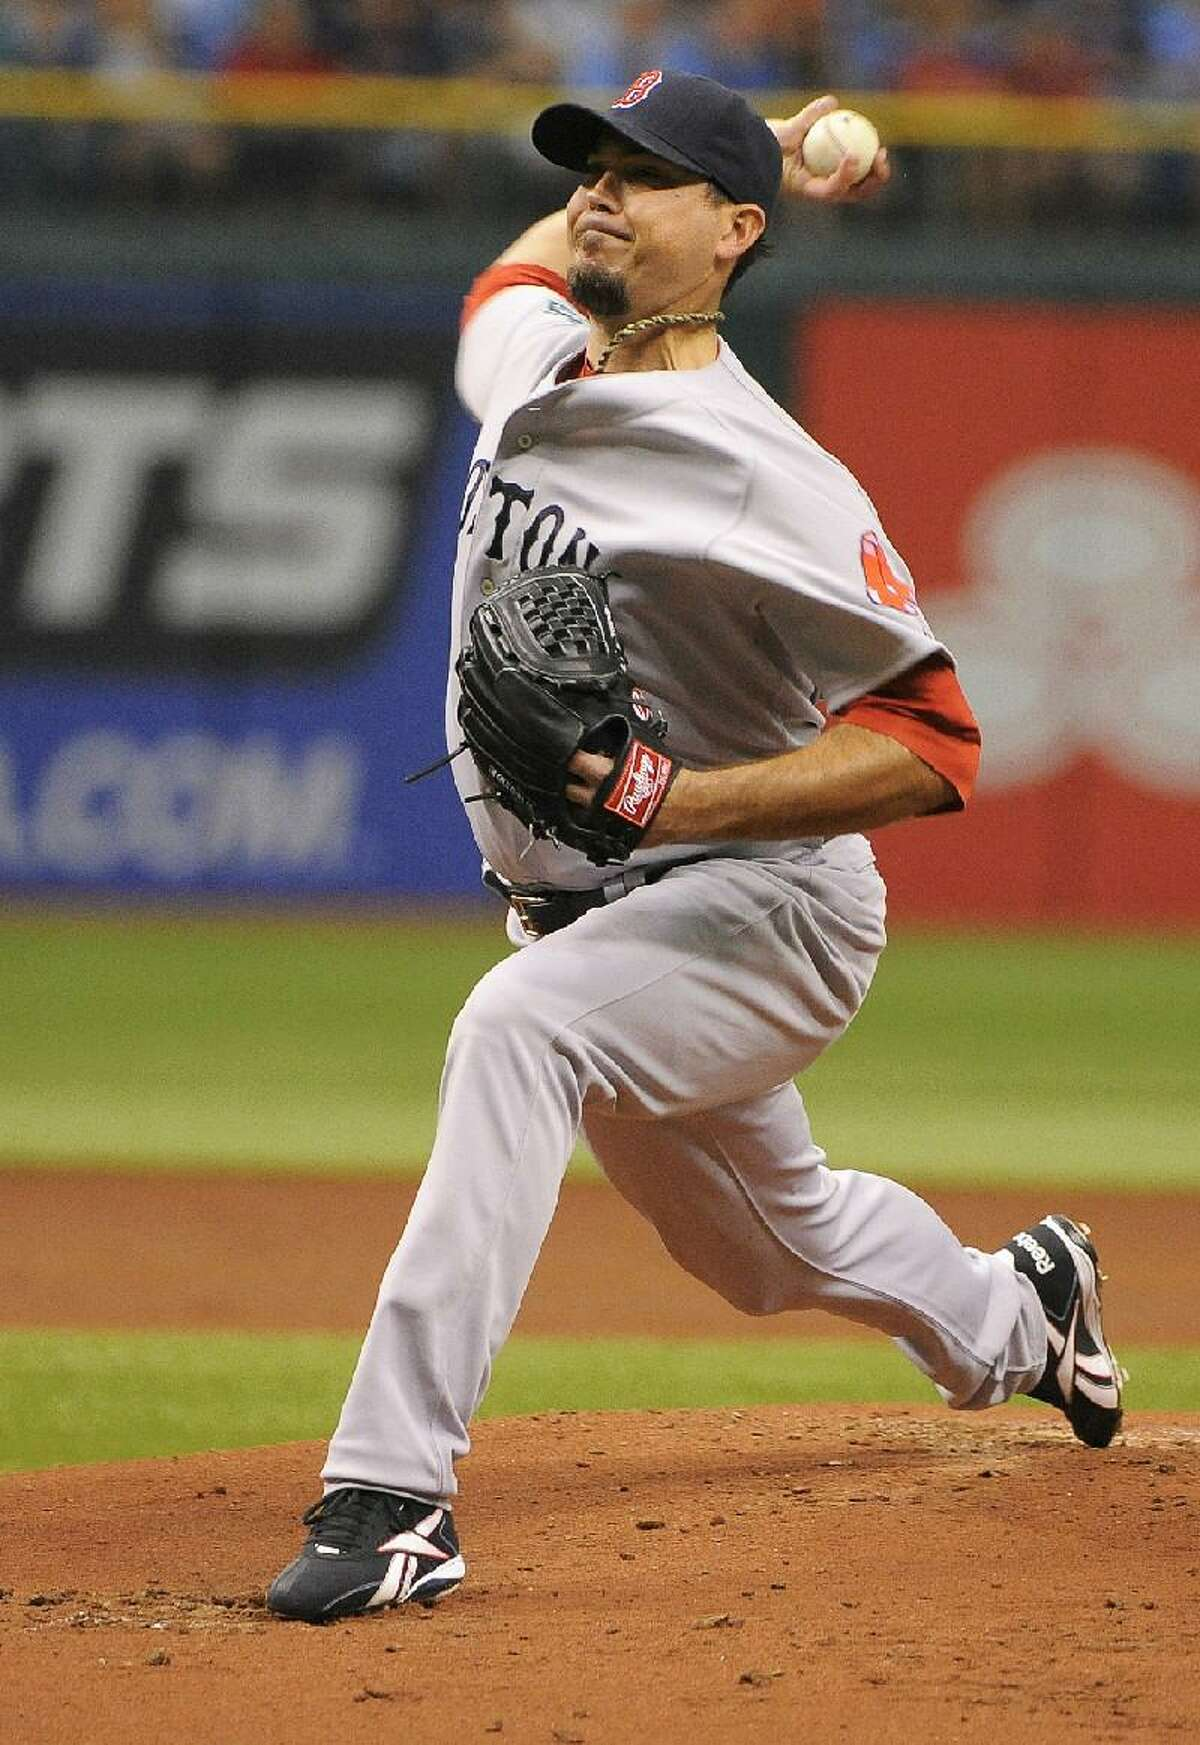 ASSOCIATED PRESS Boston Red Sox starting pitcher Josh Beckett delivers to the Tampa Bay Rays during the second inning of Sunday's game in St. Petersburg, Fla. The Red Sox won 7-3.